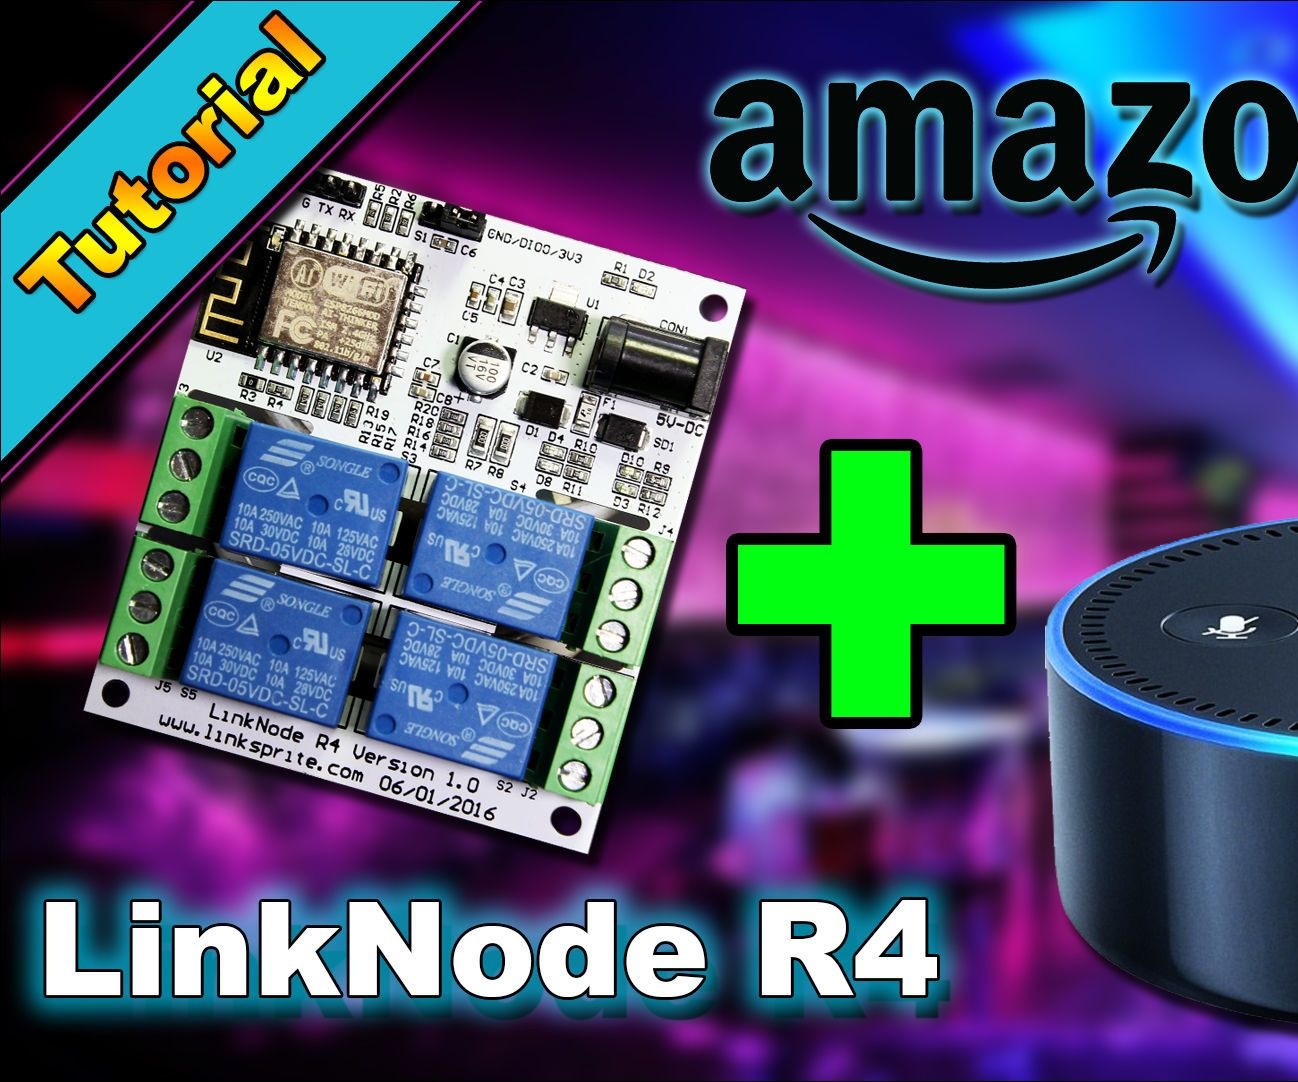 Diy Home Automation With Esp8266 Linknode R4 And Amazon Alexa Home Automation Smart Home Automation Diy Home Automation